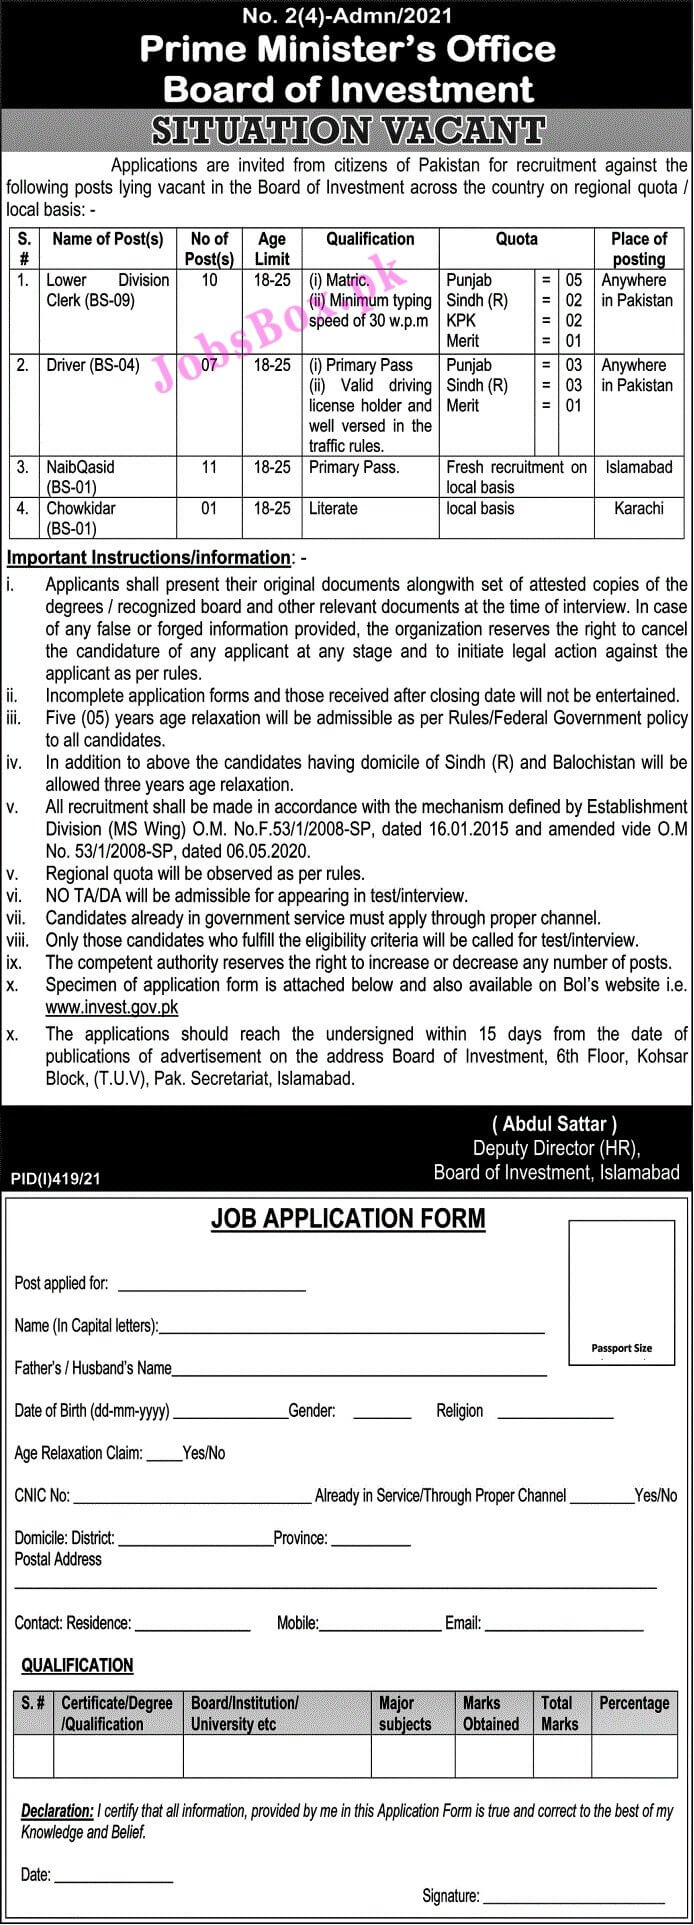 Prime Minister Office Board of Investment Jobs 2021 in Pakistan - Prime Minister Office Jobs 2021 Application Form - www.invest.gov.pk Jobs 2021